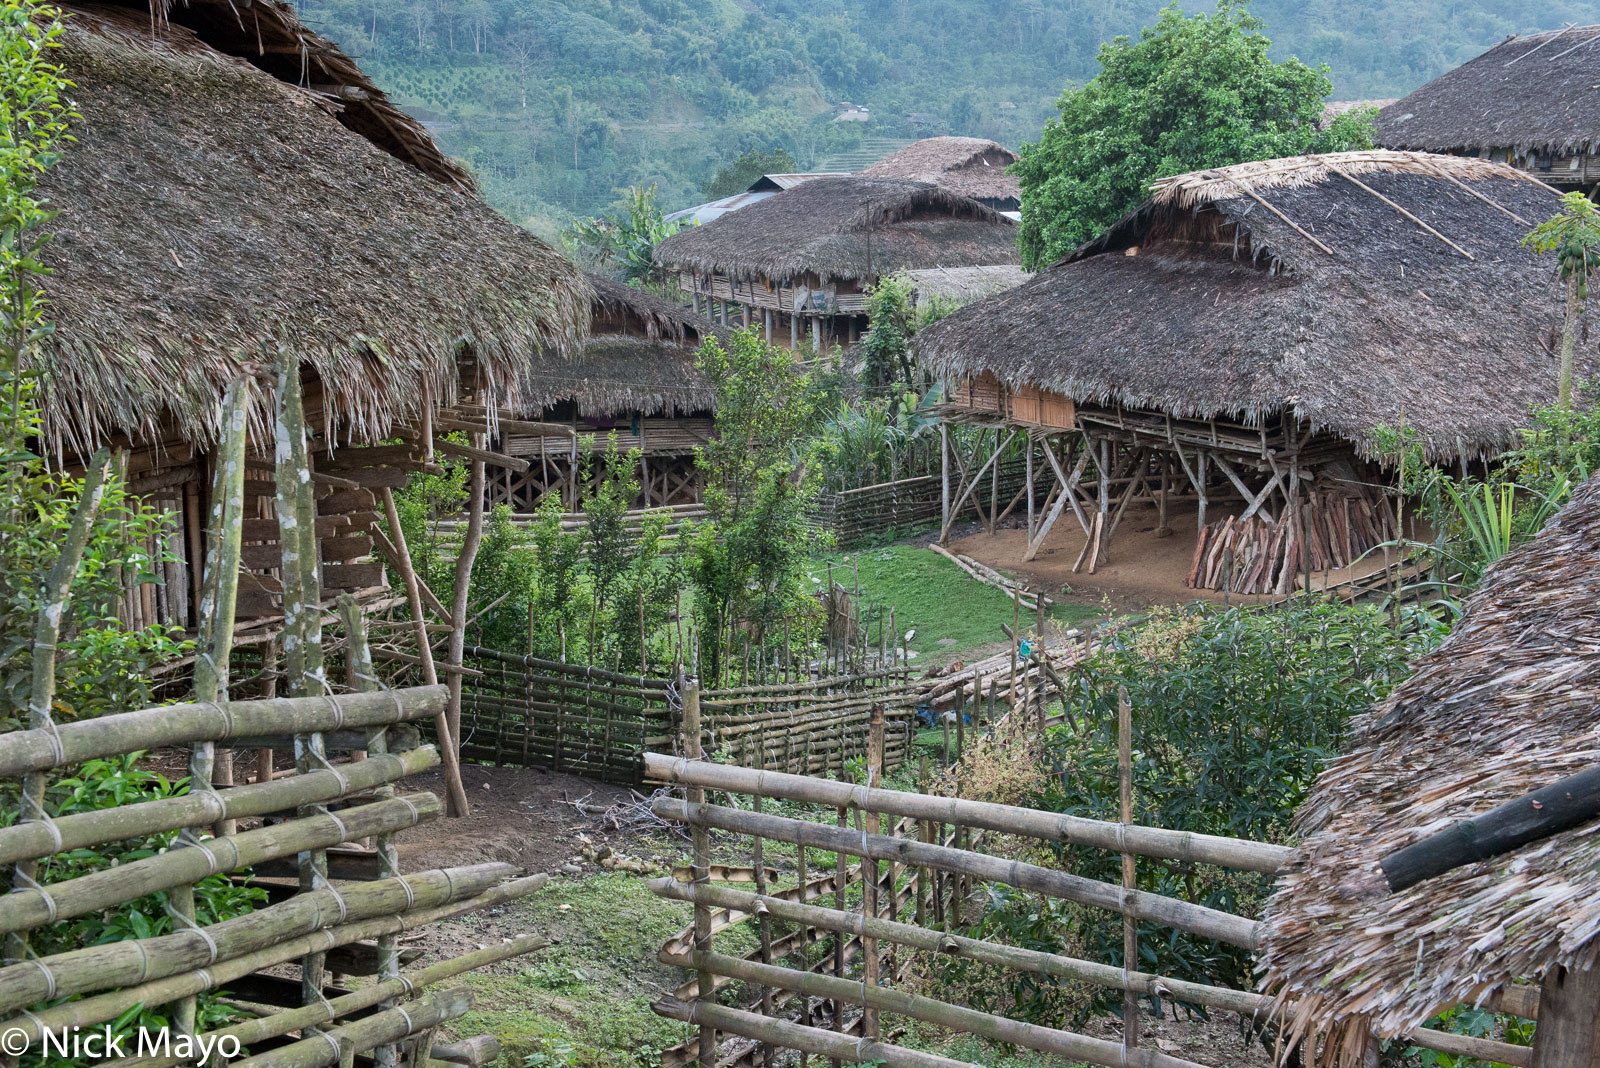 Houses in the thatched Galo village of Paya.